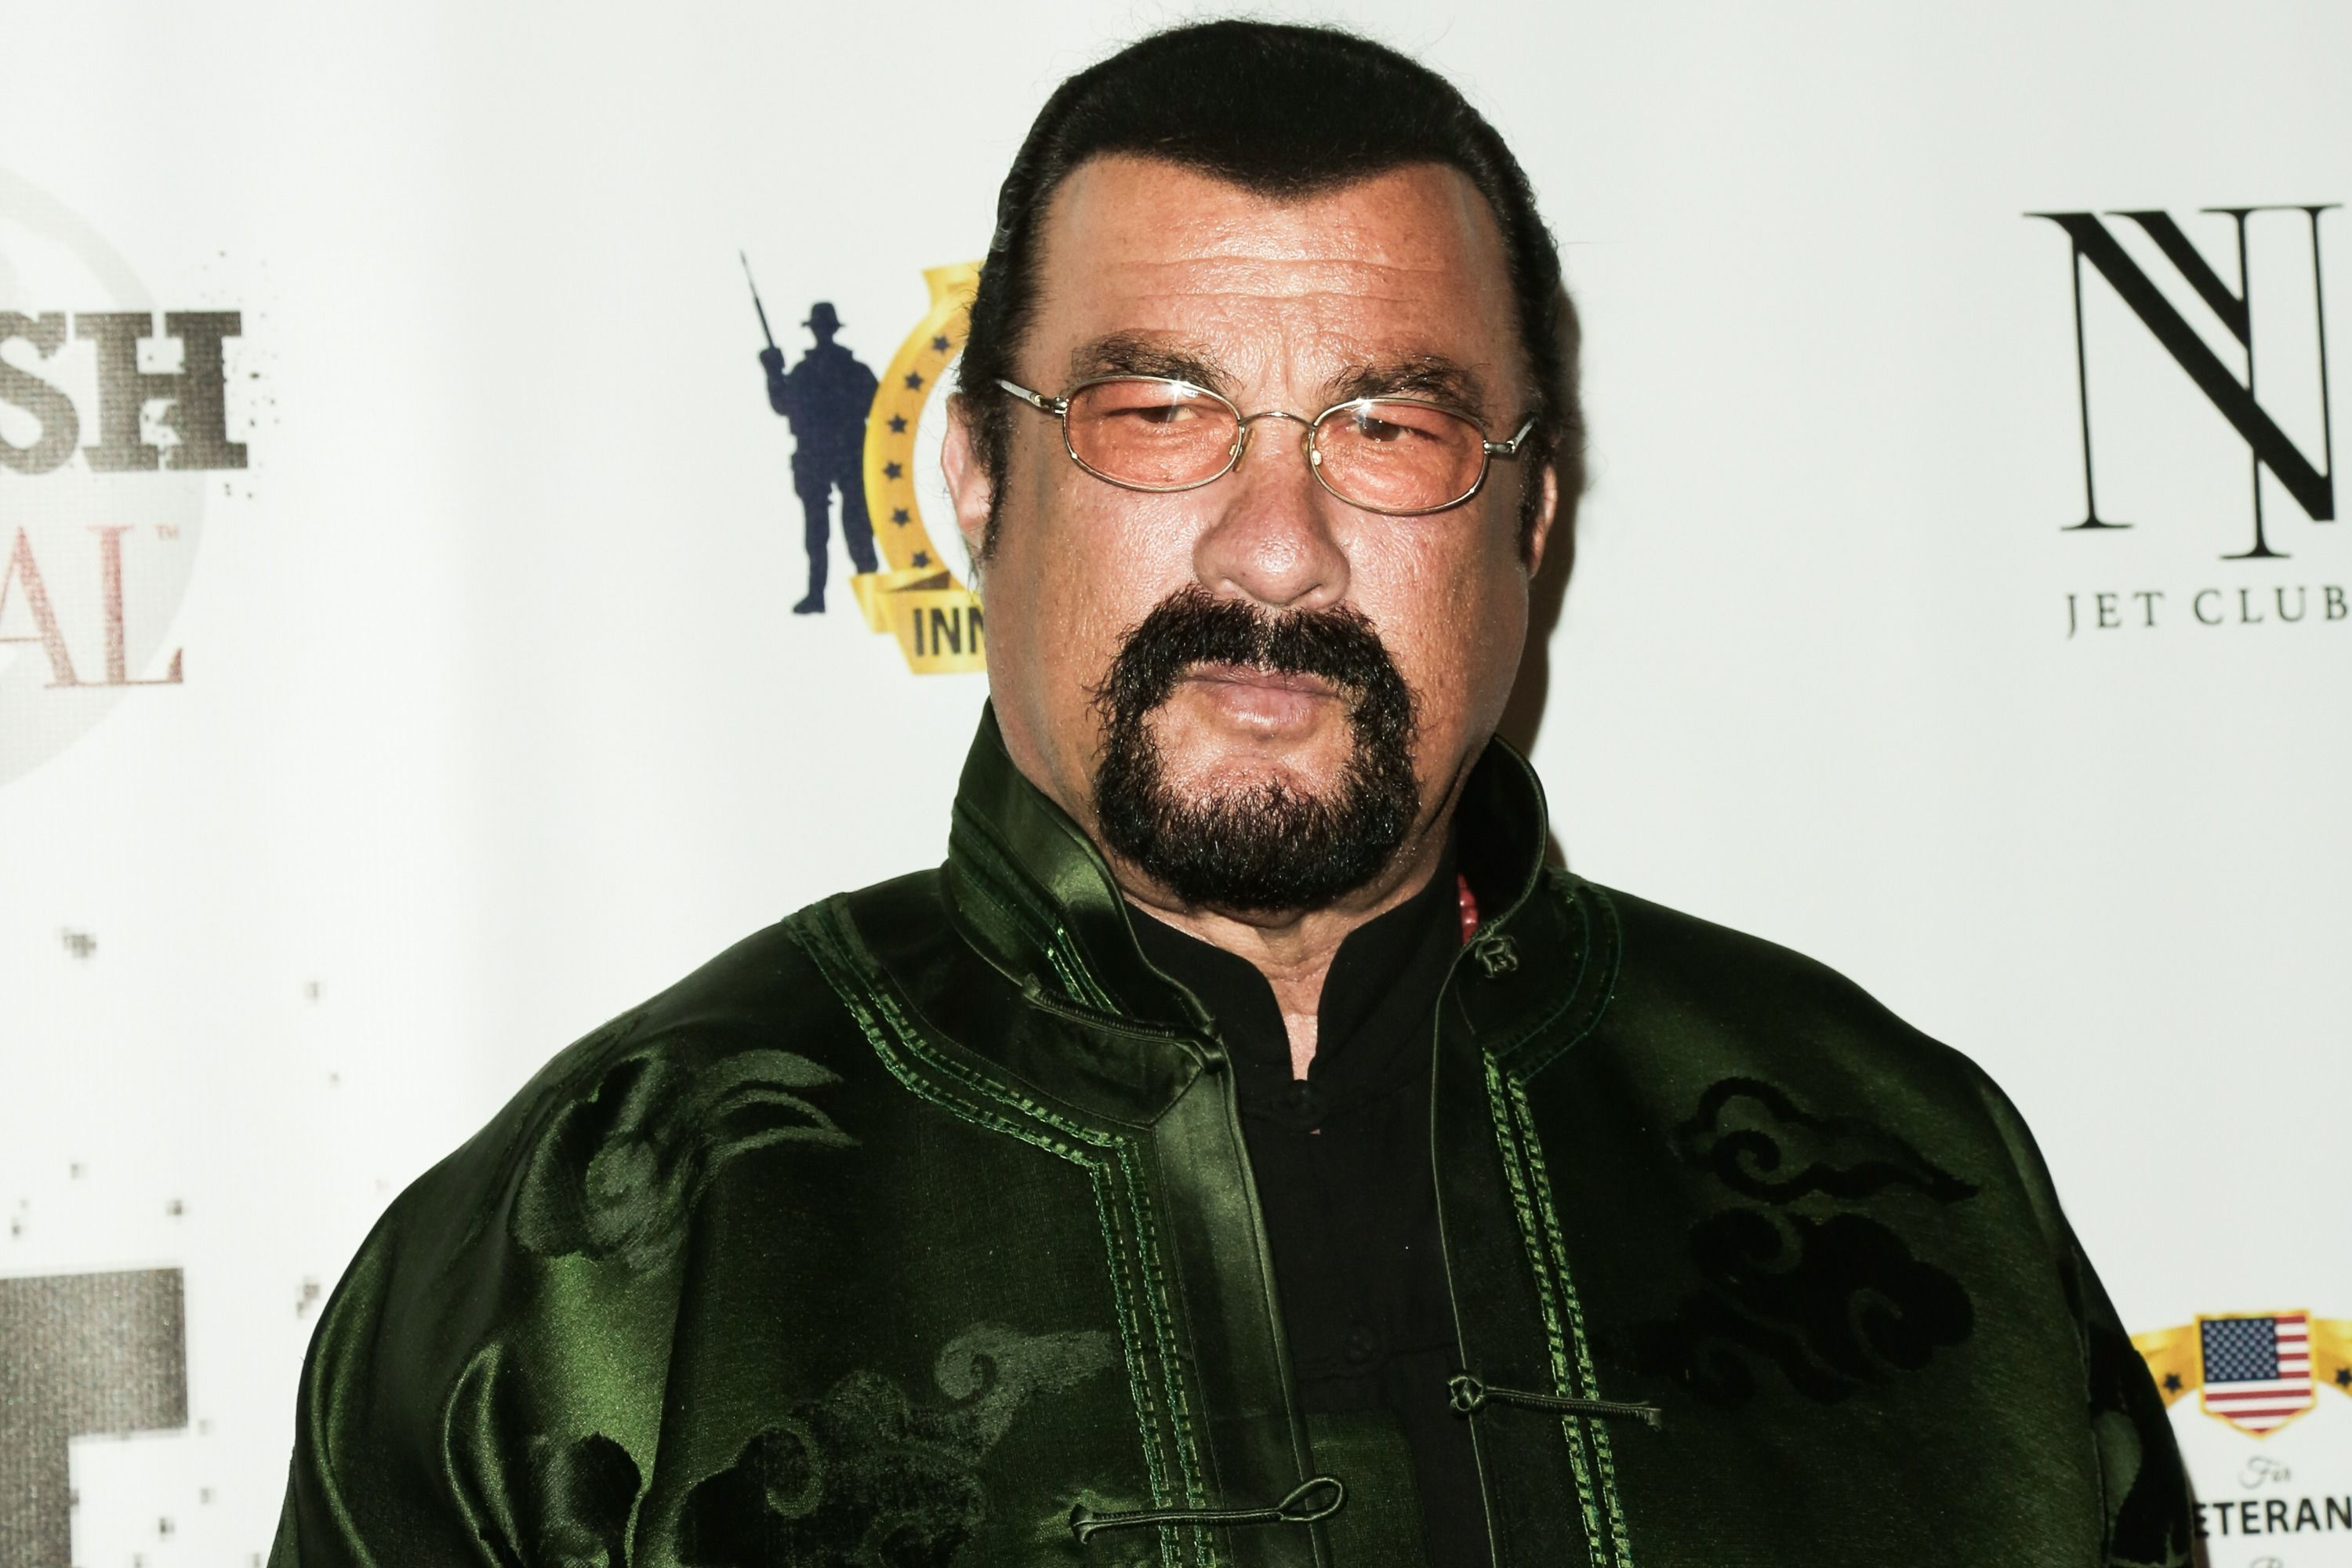 George Foreman challenges Steven Seagal to fight